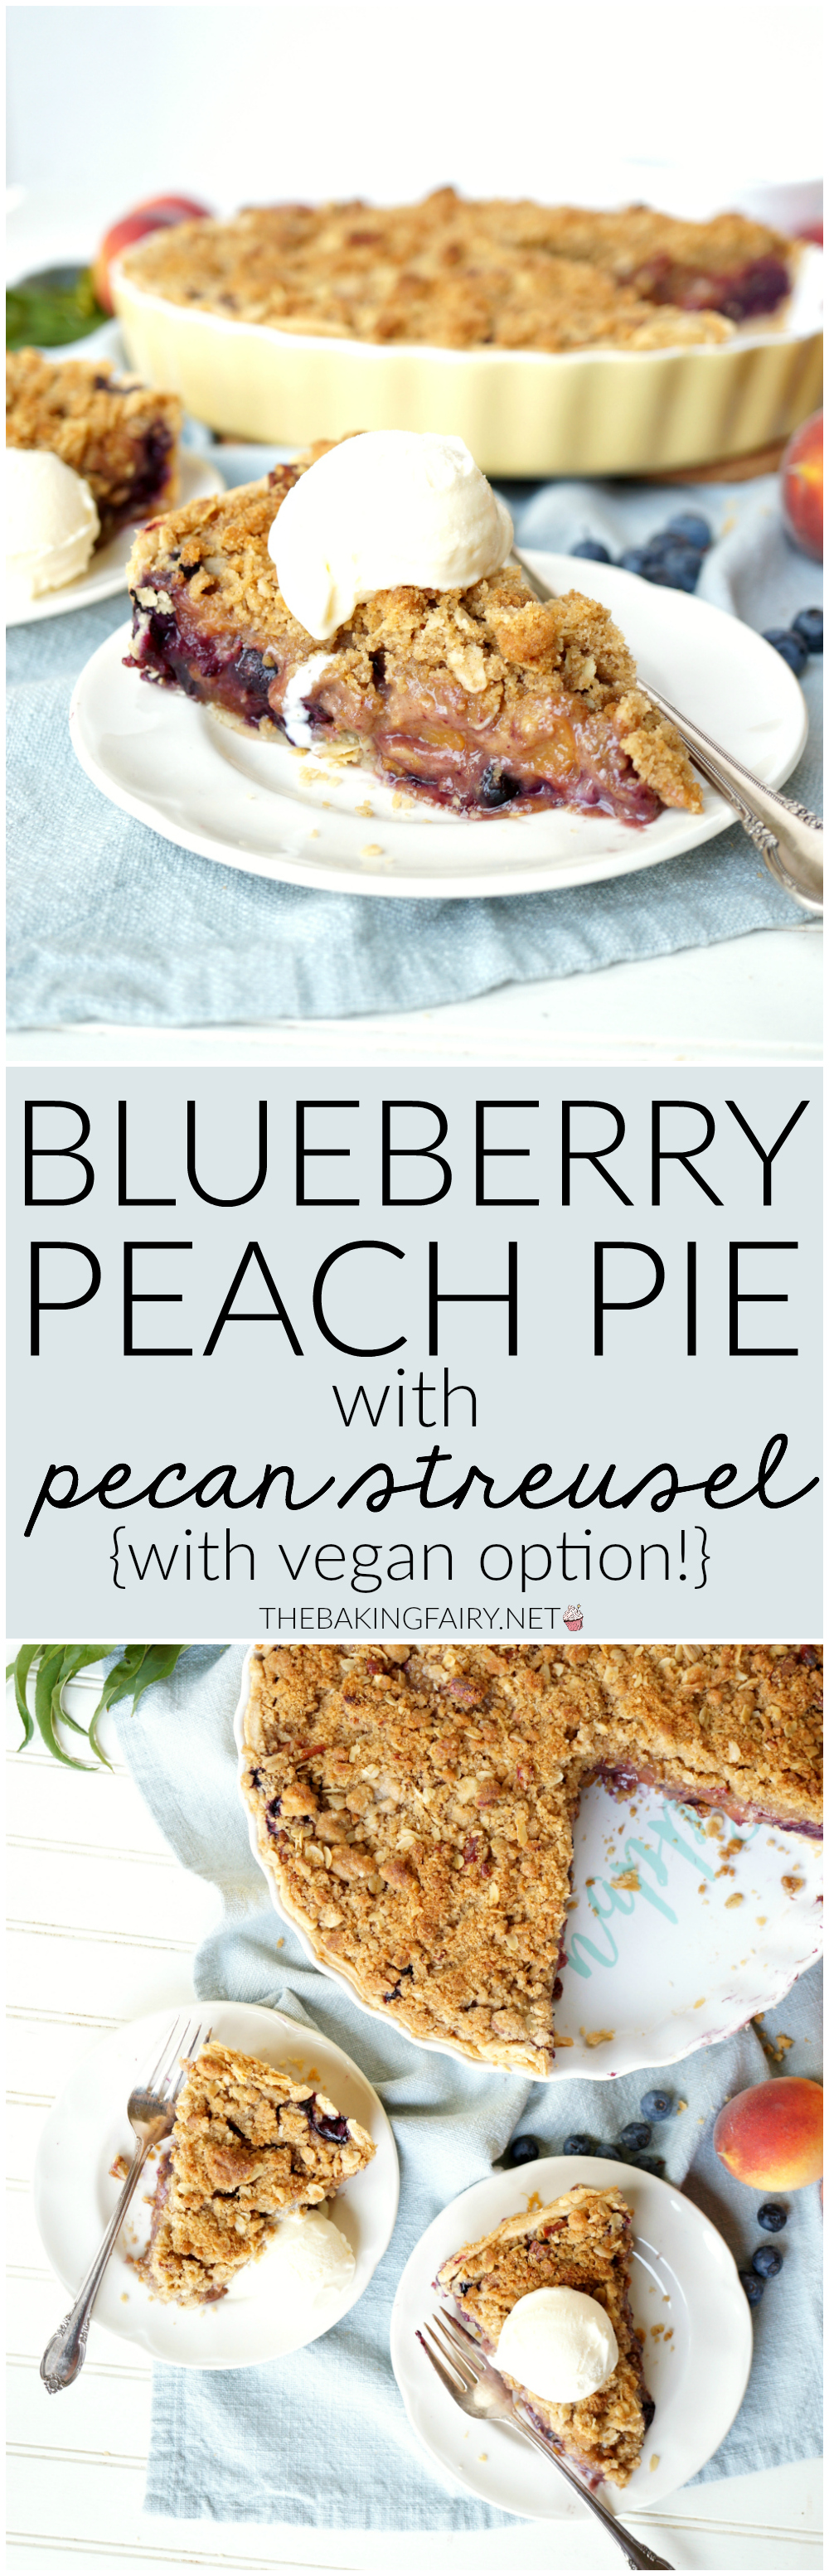 blueberry peach pie with pecan streusel | The Baking Fairy #FarmersMarketWeek